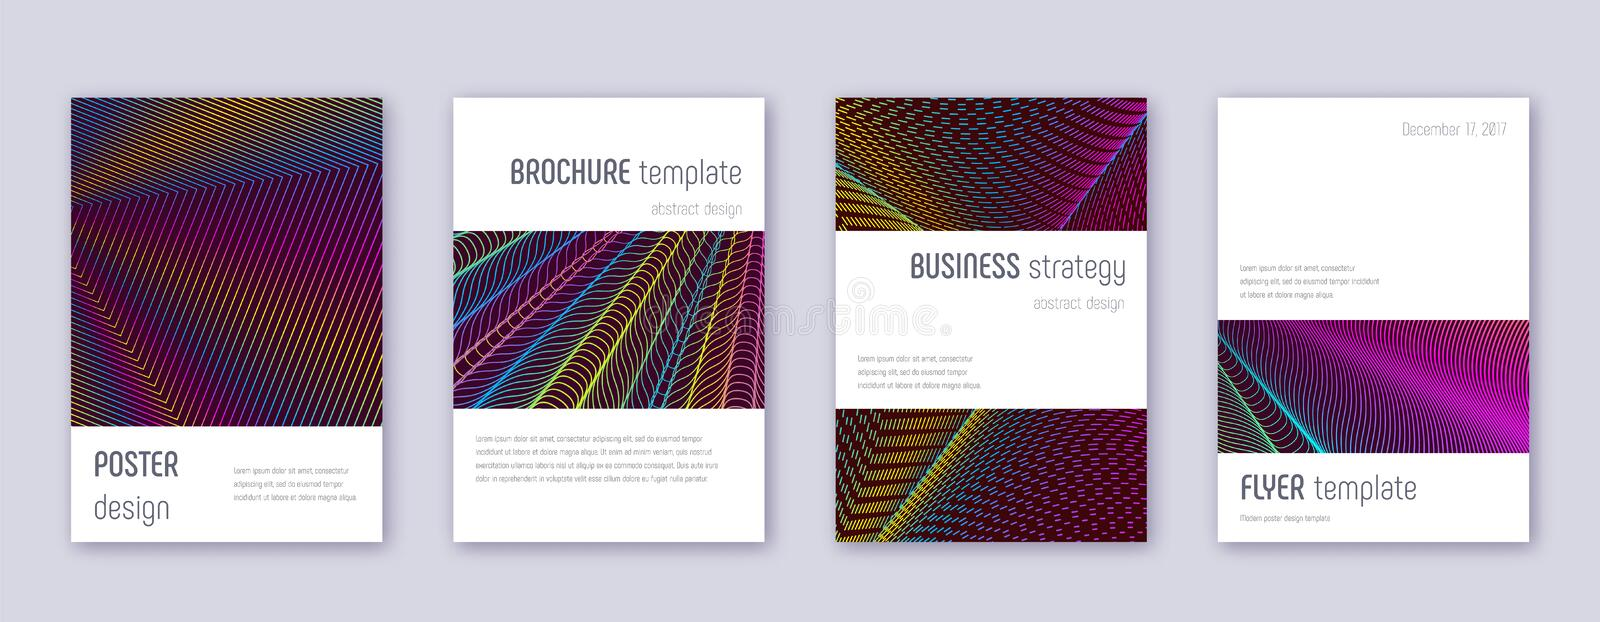 Minimalistic brochure design template set. Rainbow. Abstract lines on wine red background. Authentic brochure design. Appealing catalog, poster, book template stock illustration